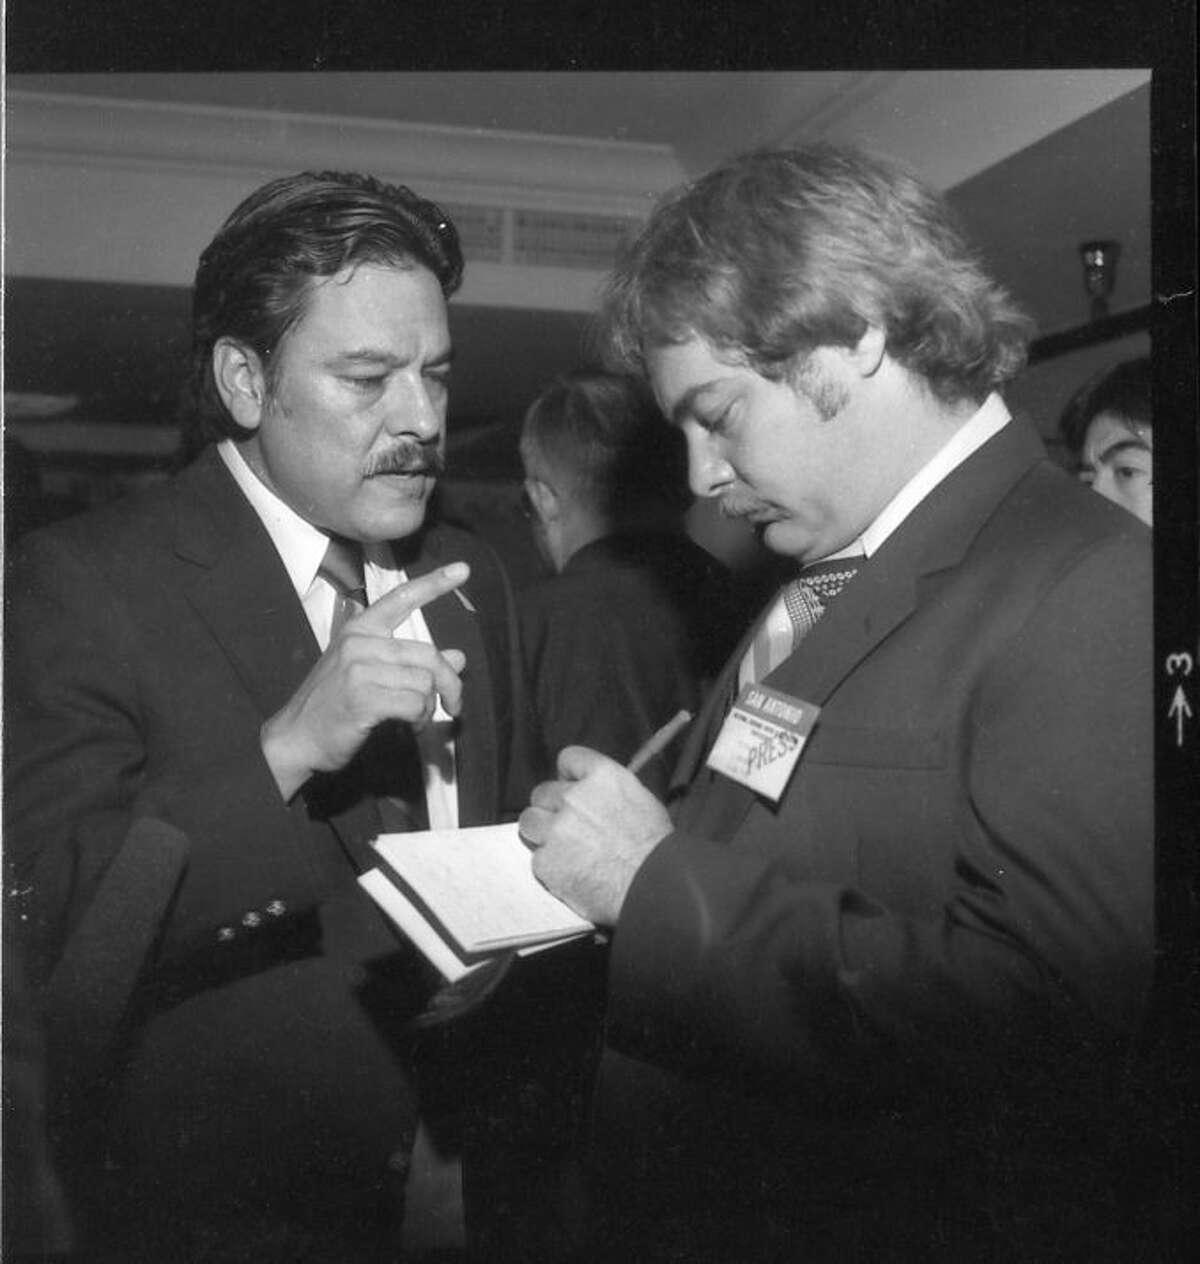 The late Willie Velasquez, founder and president of the Southwest Voter Registration Education Project, Photo courtesy of SVREP